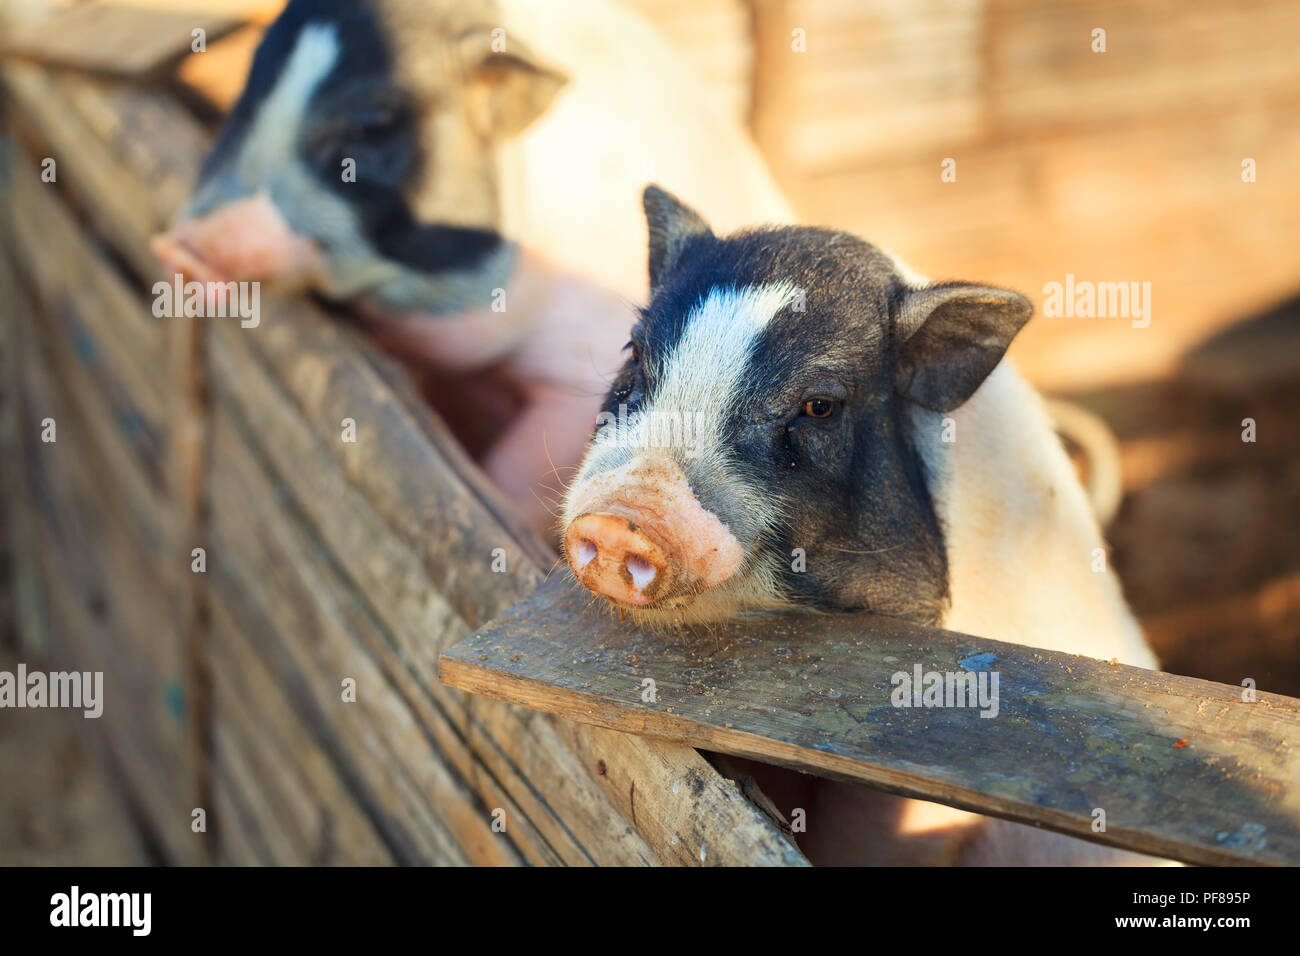 Pig in the farm - Stock Image